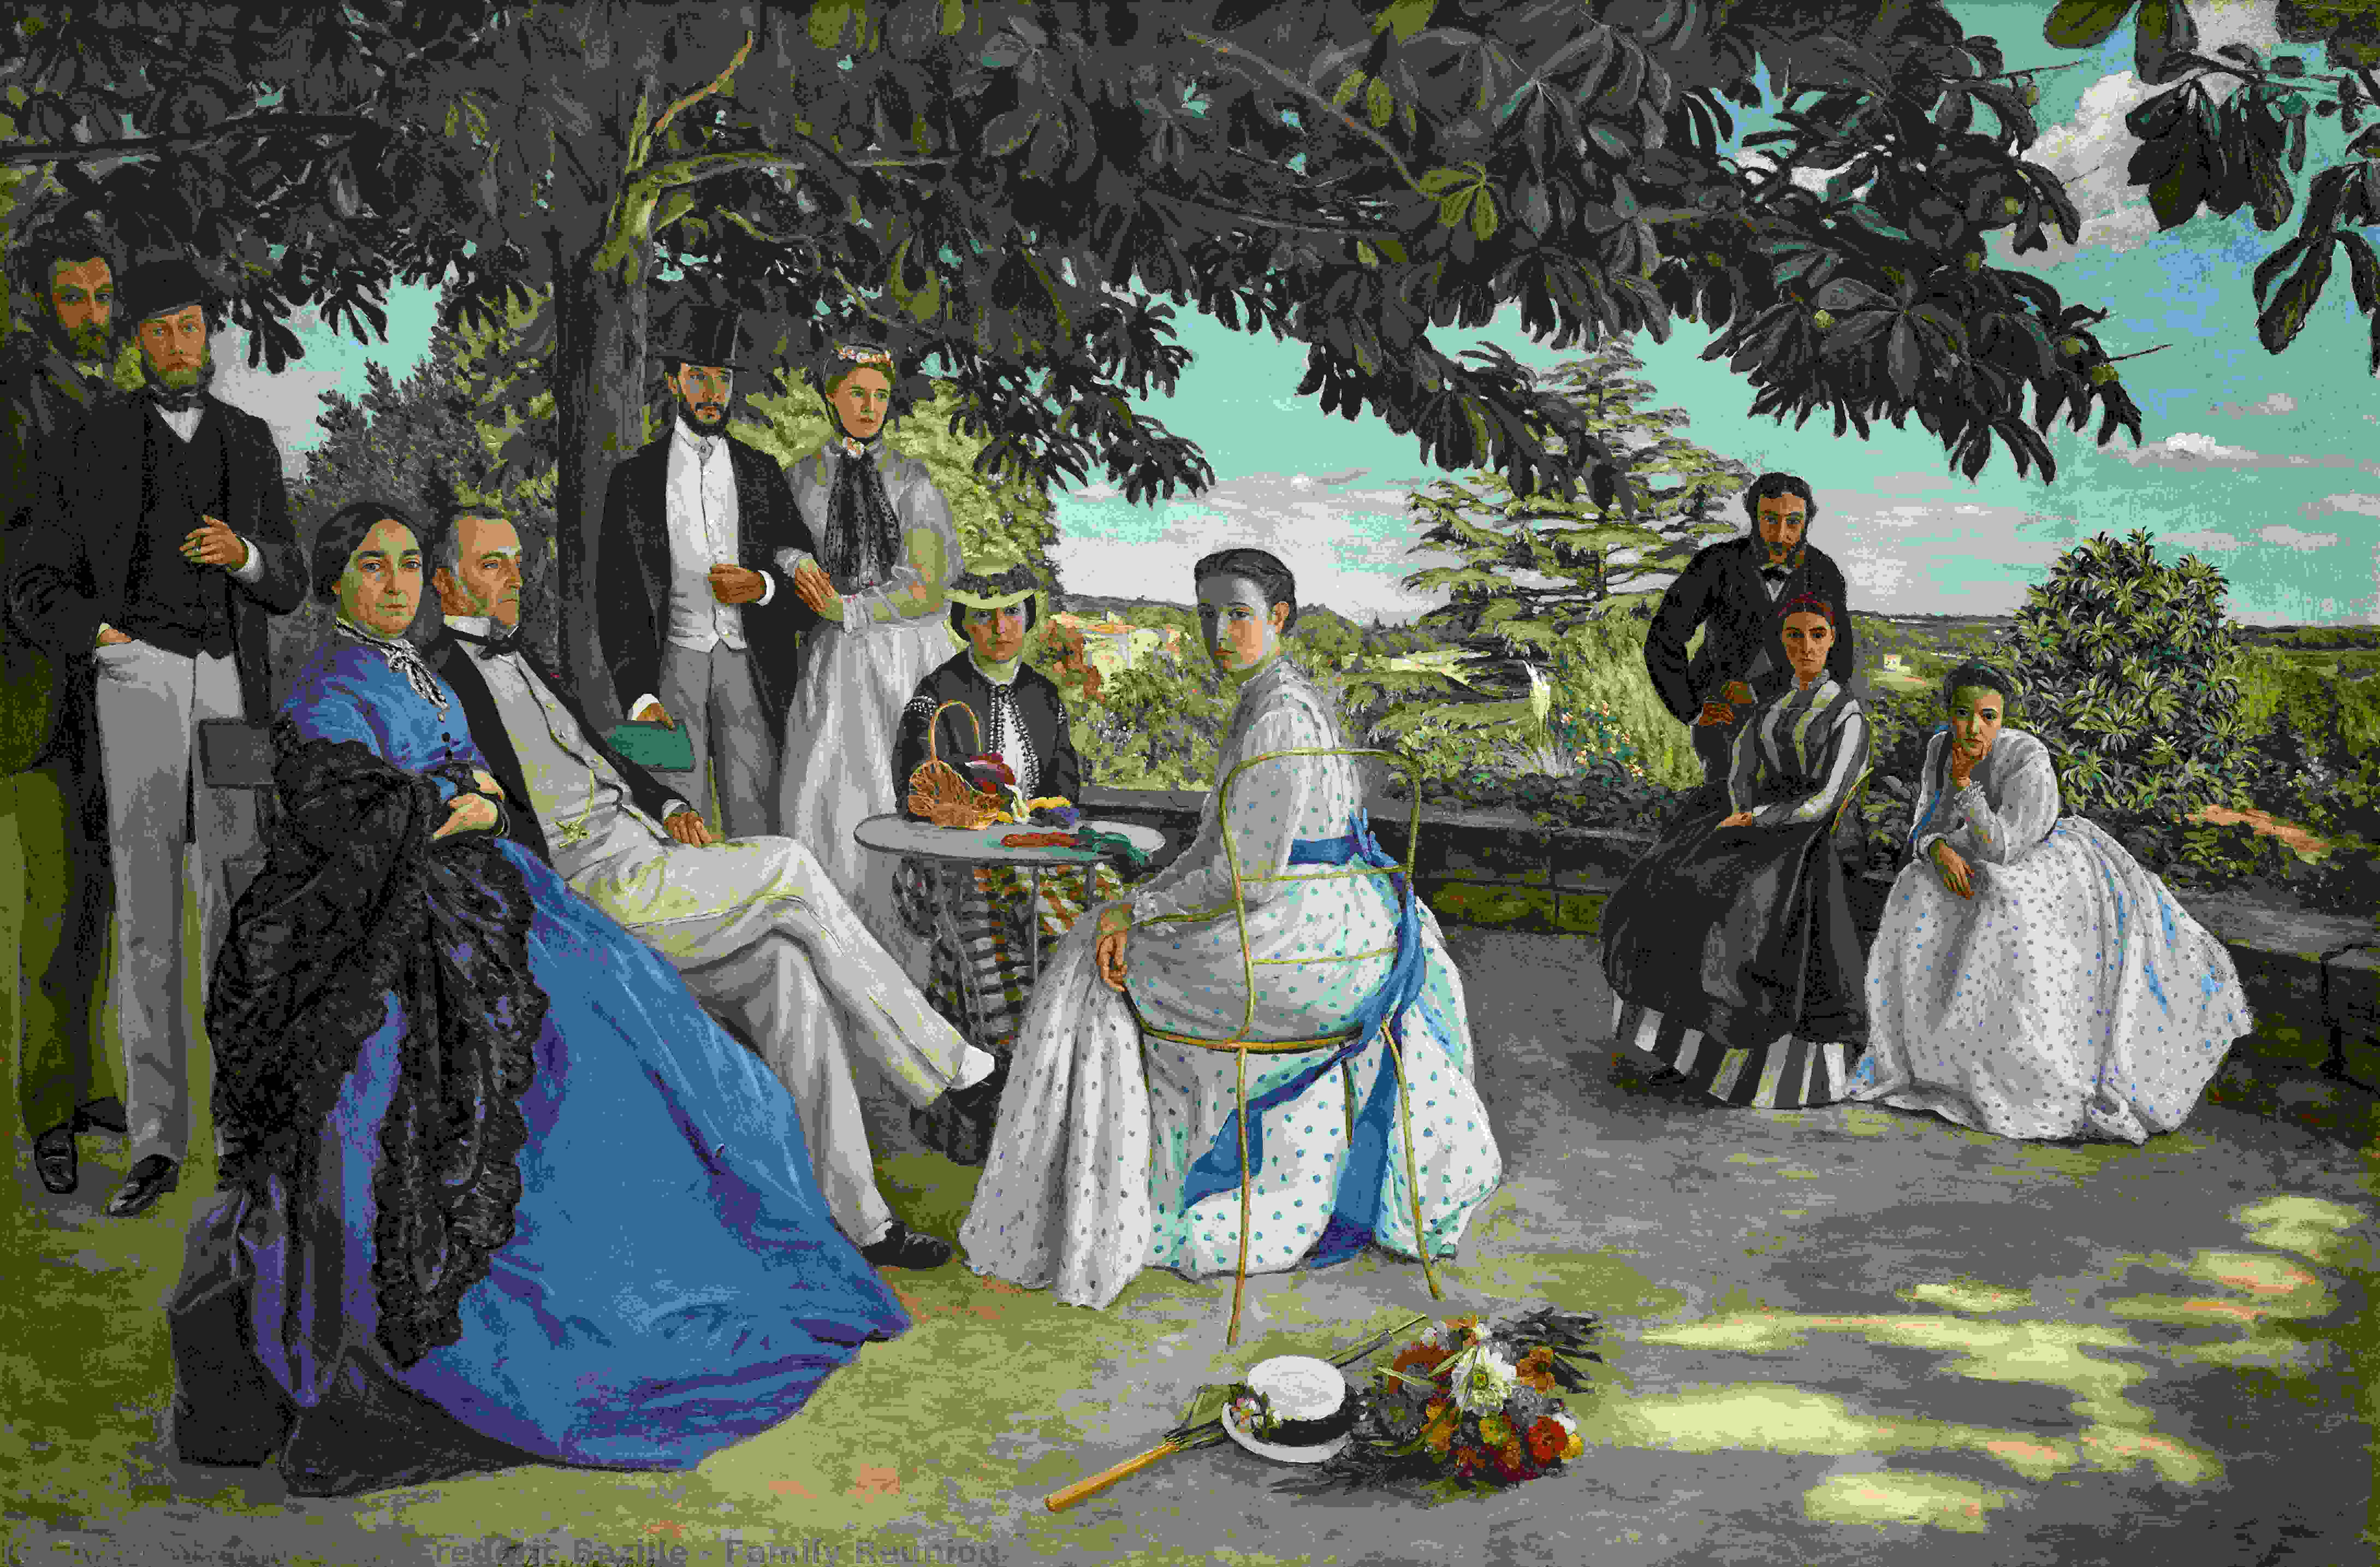 Wikioo.org - The Encyclopedia of Fine Arts - Painting, Artwork by Jean Frederic Bazille - Family Reunion